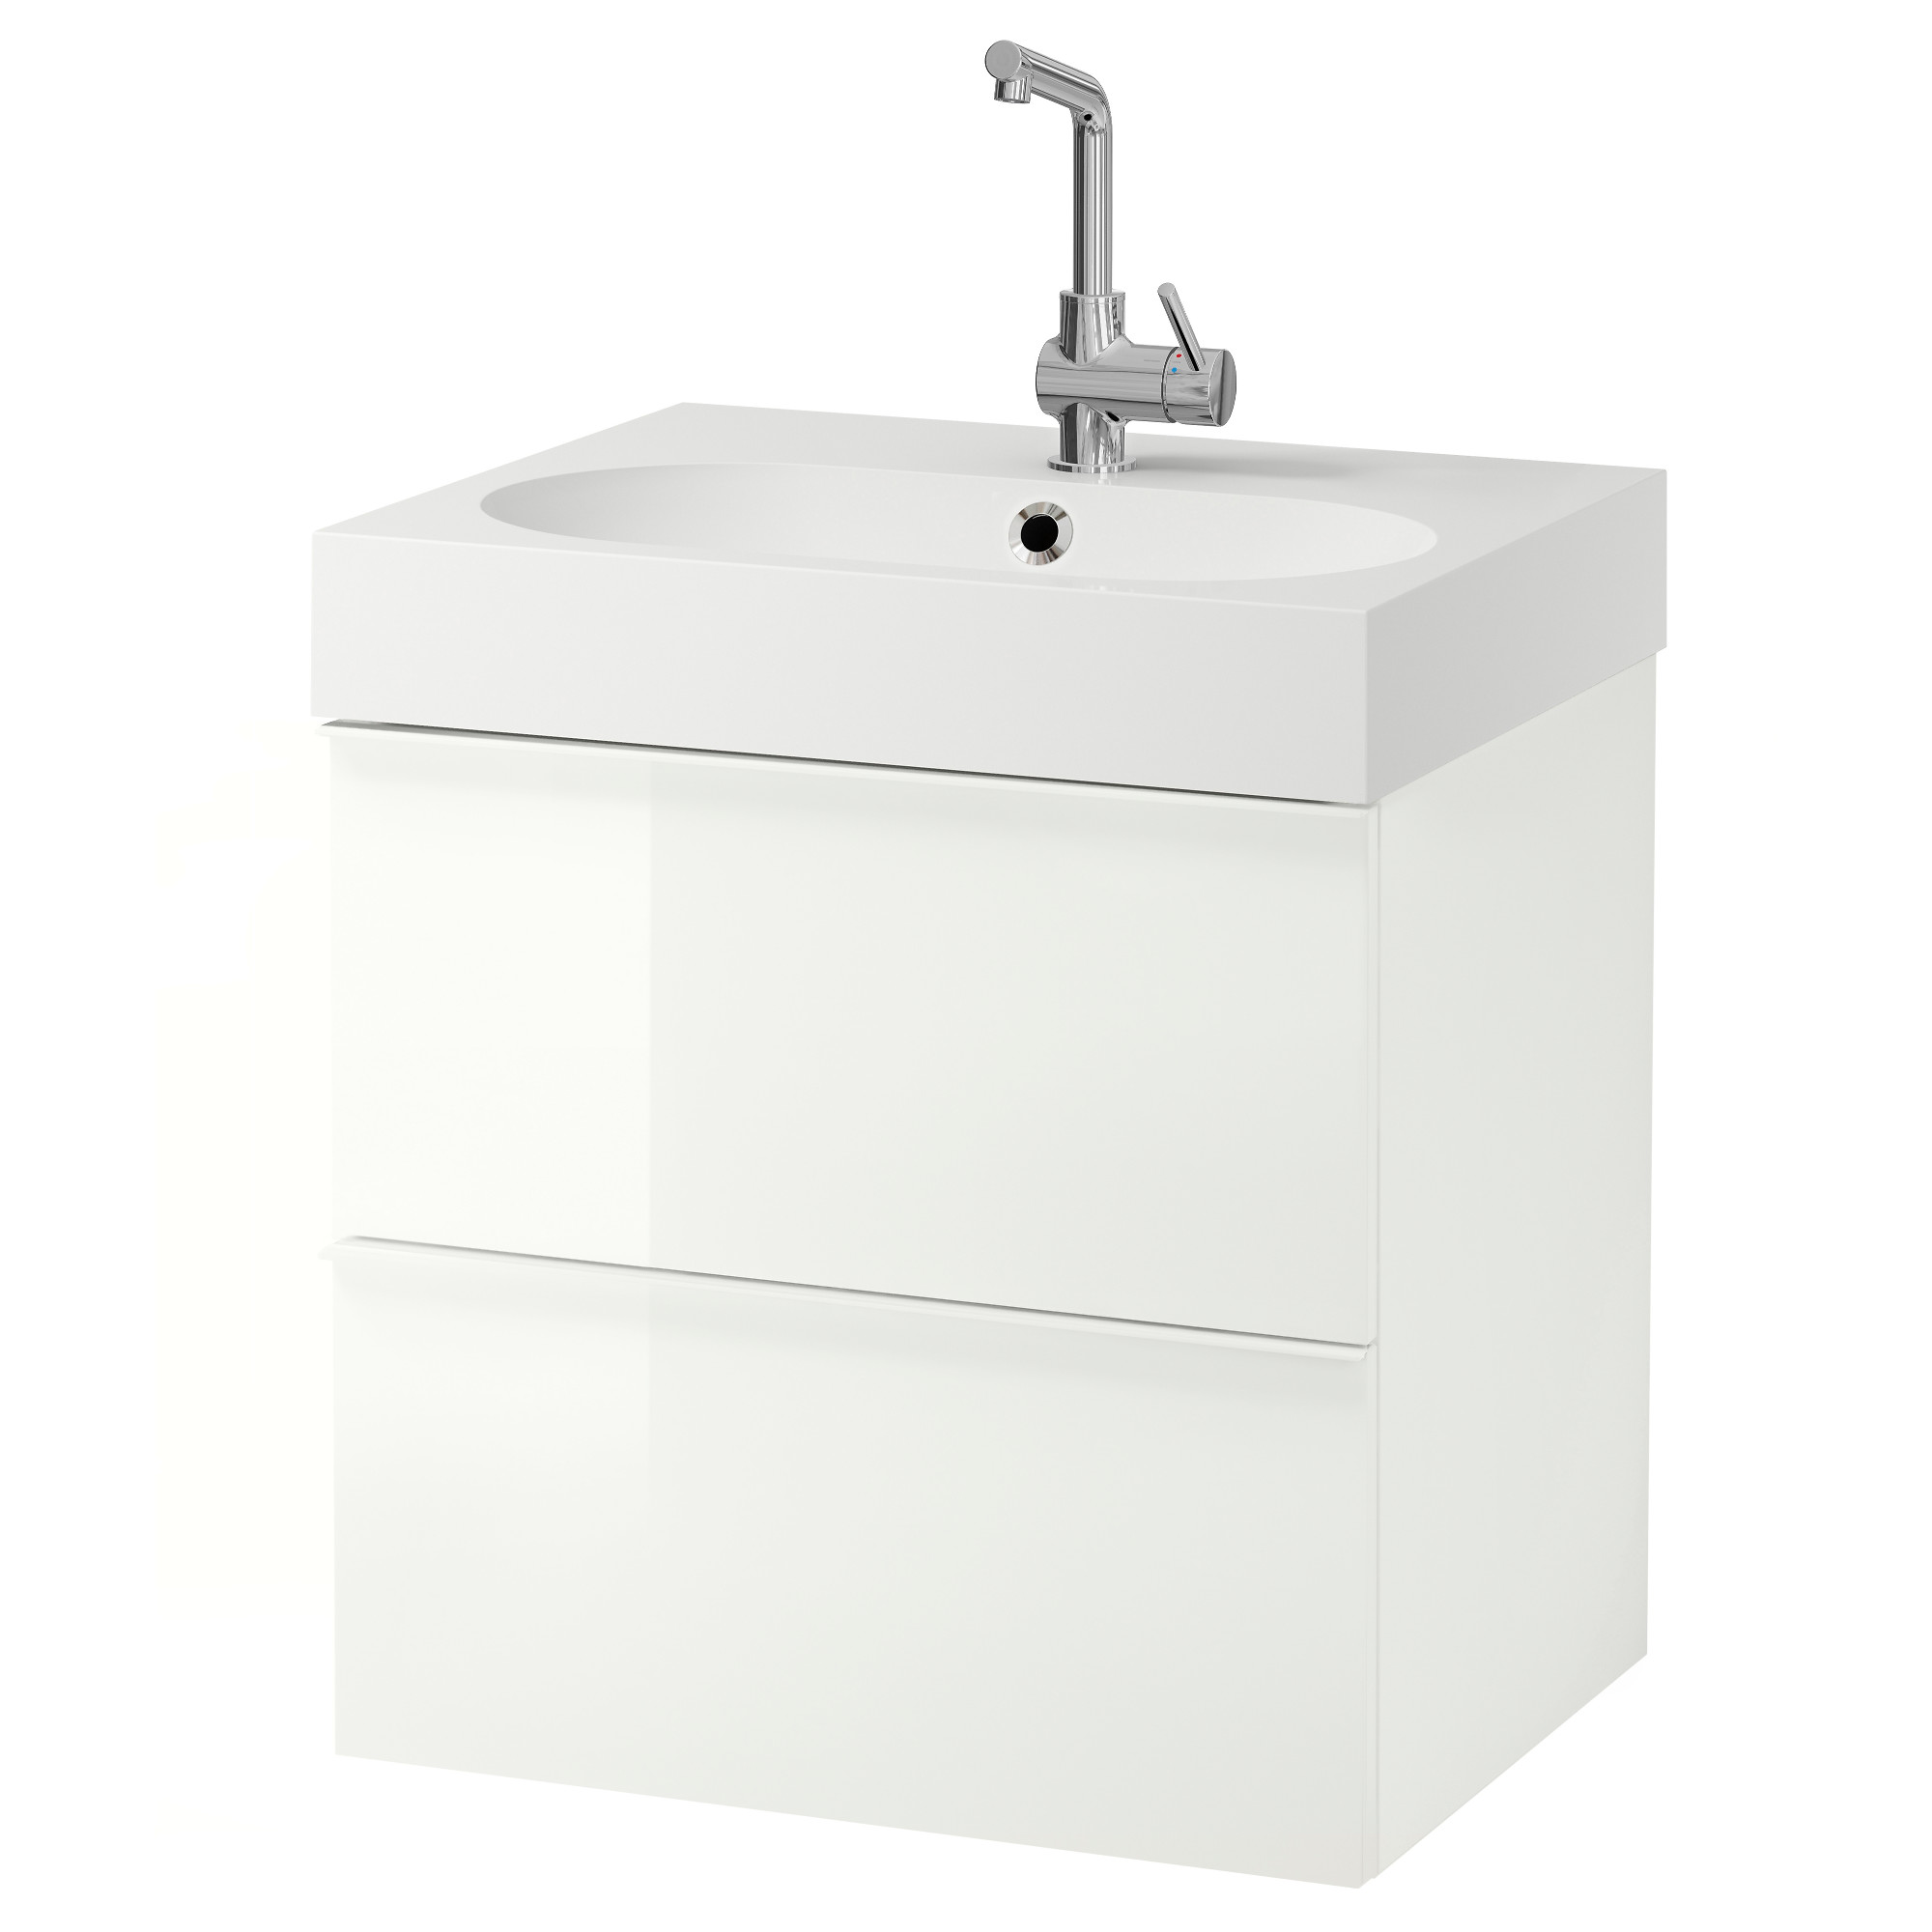 GODMORGON / BRÅVIKEN Sink cabinet with 2 drawers - white - IKEA